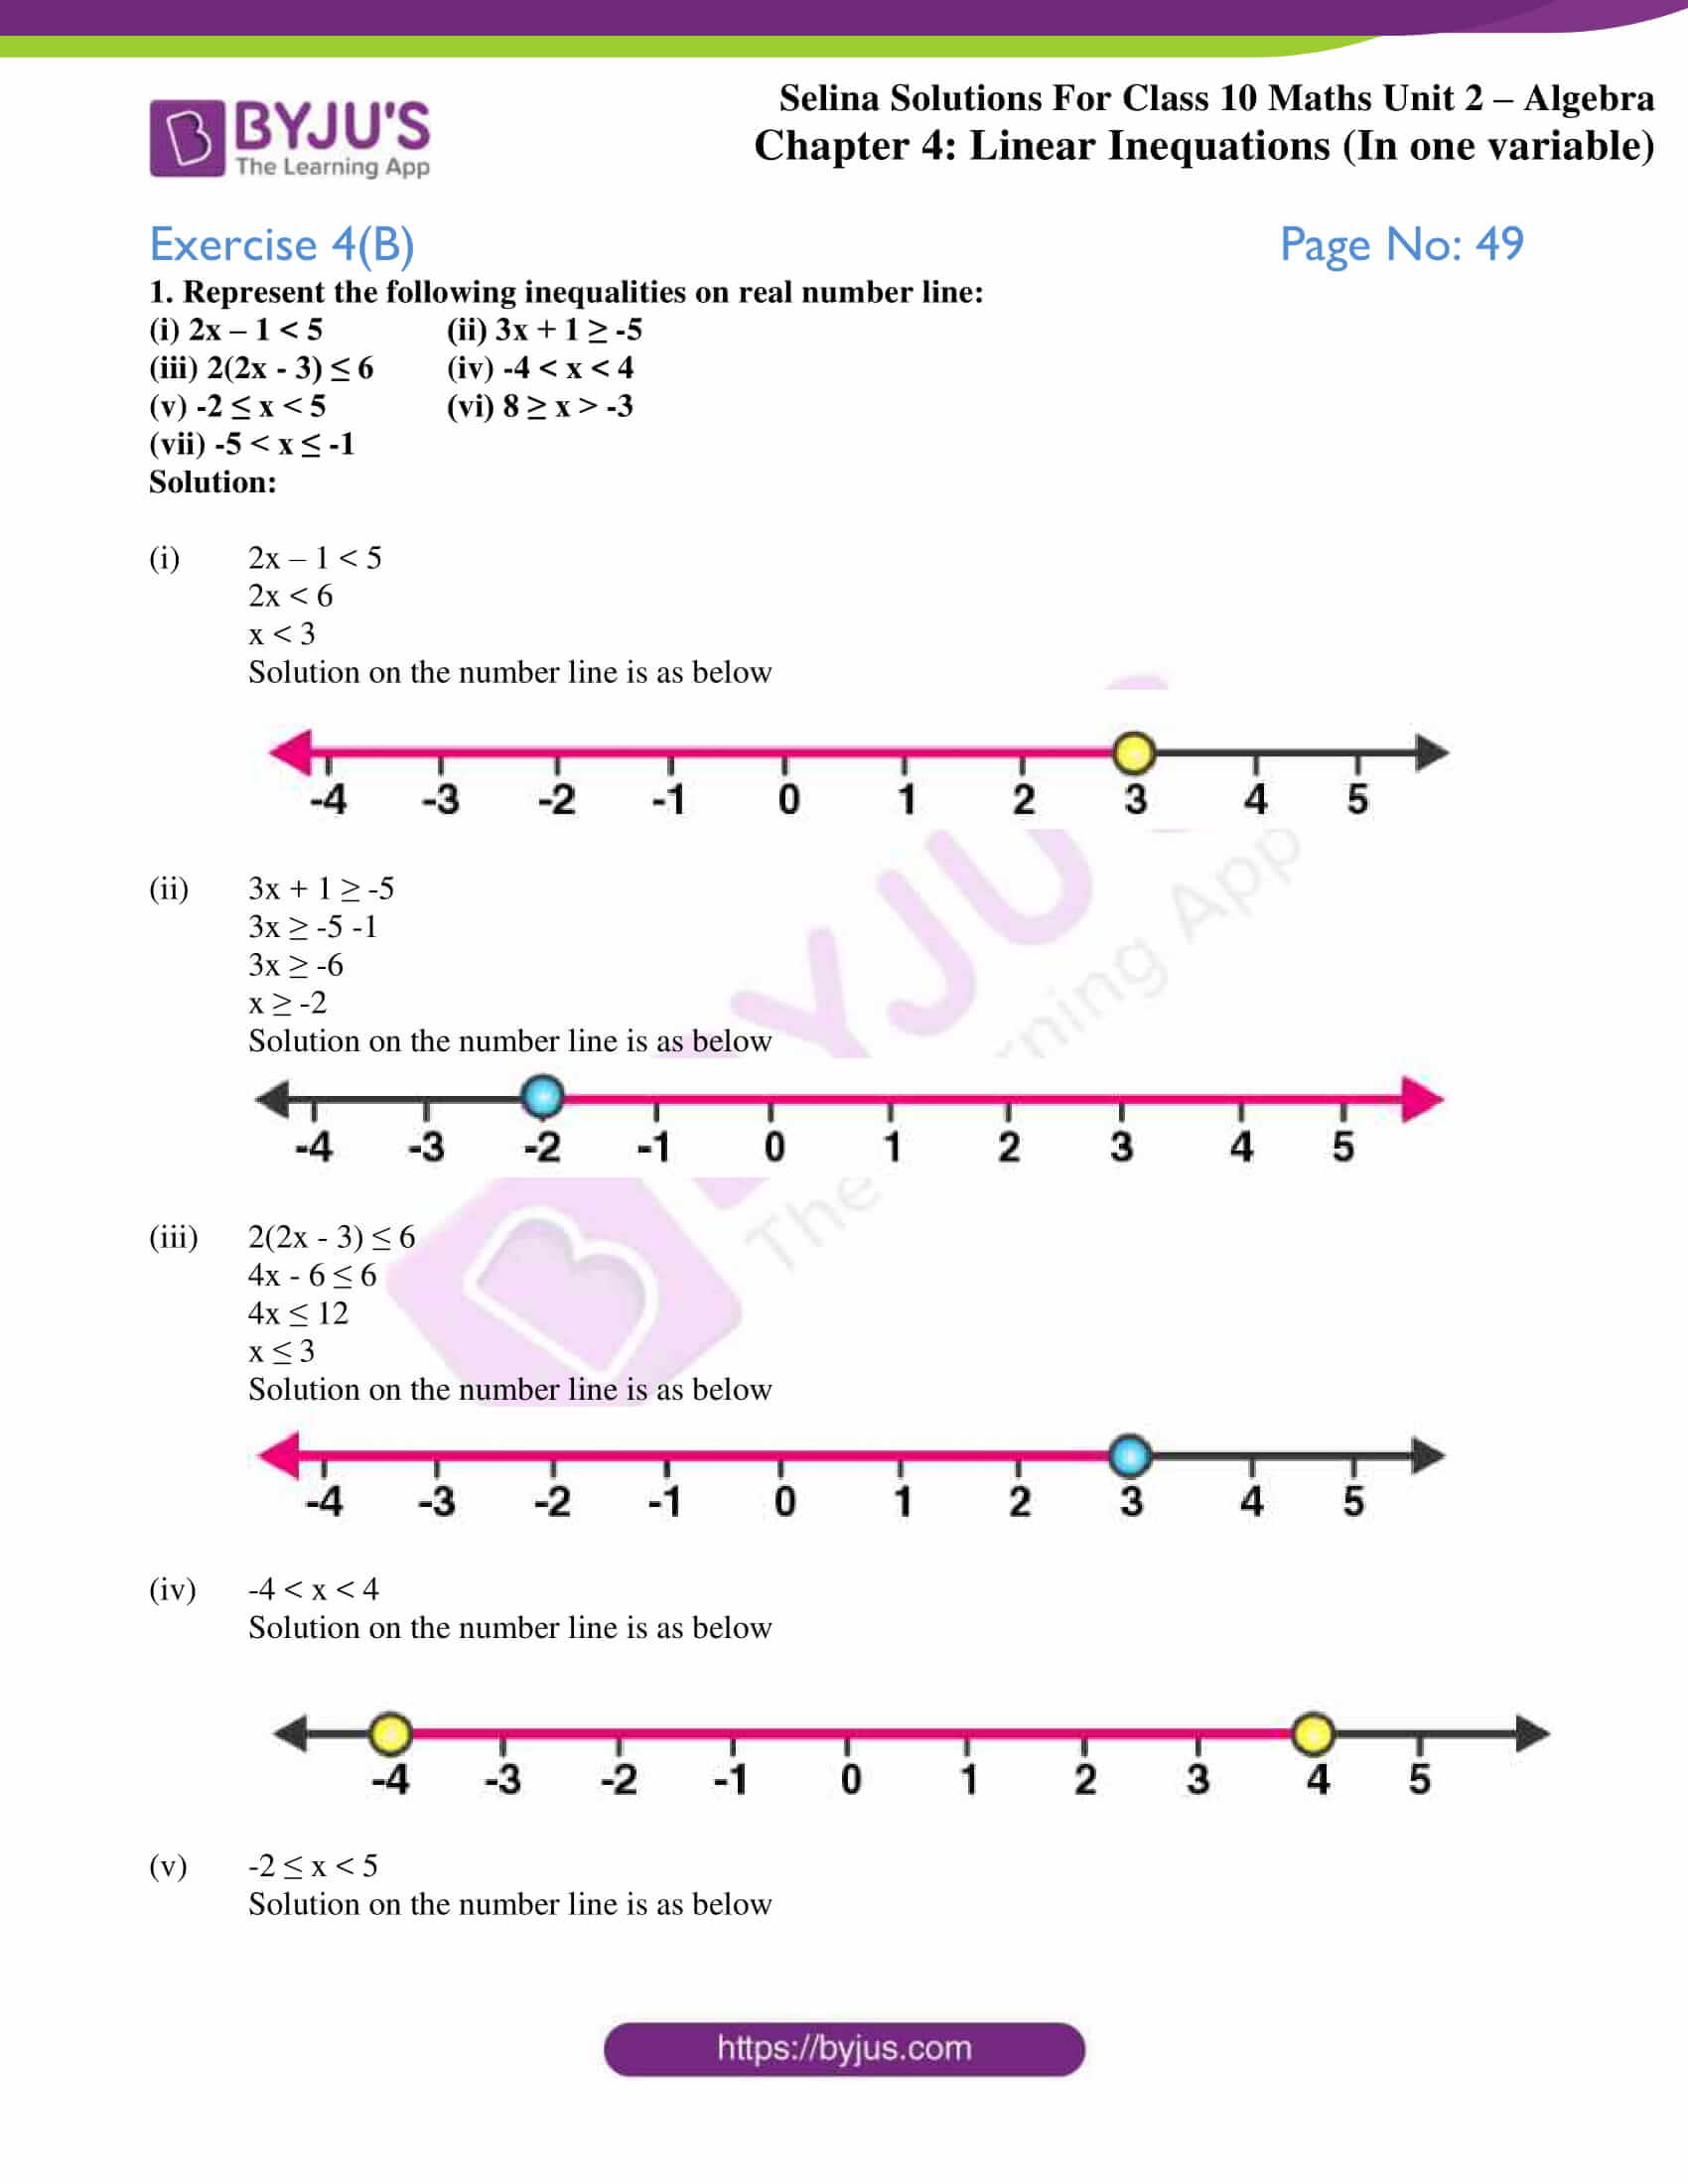 selina solution concise maths class 10 chapter 4